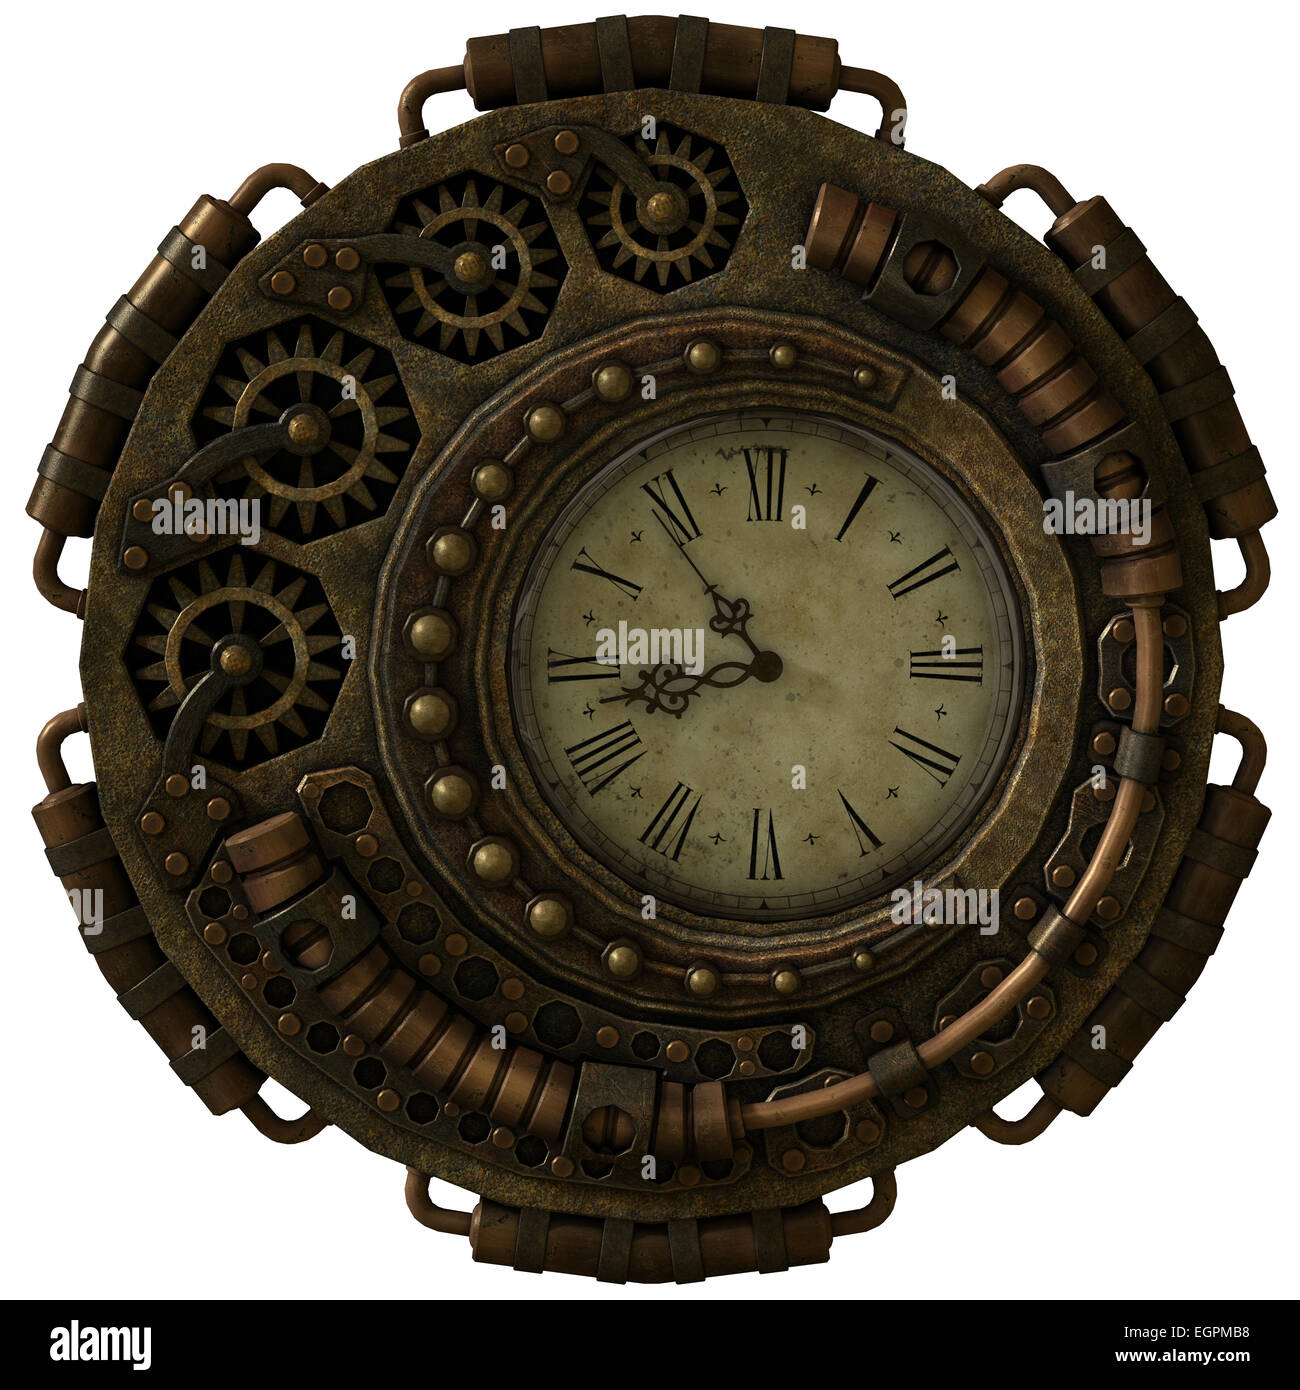 a 3d computer graphics of a clock in Steampunk style - Stock Image